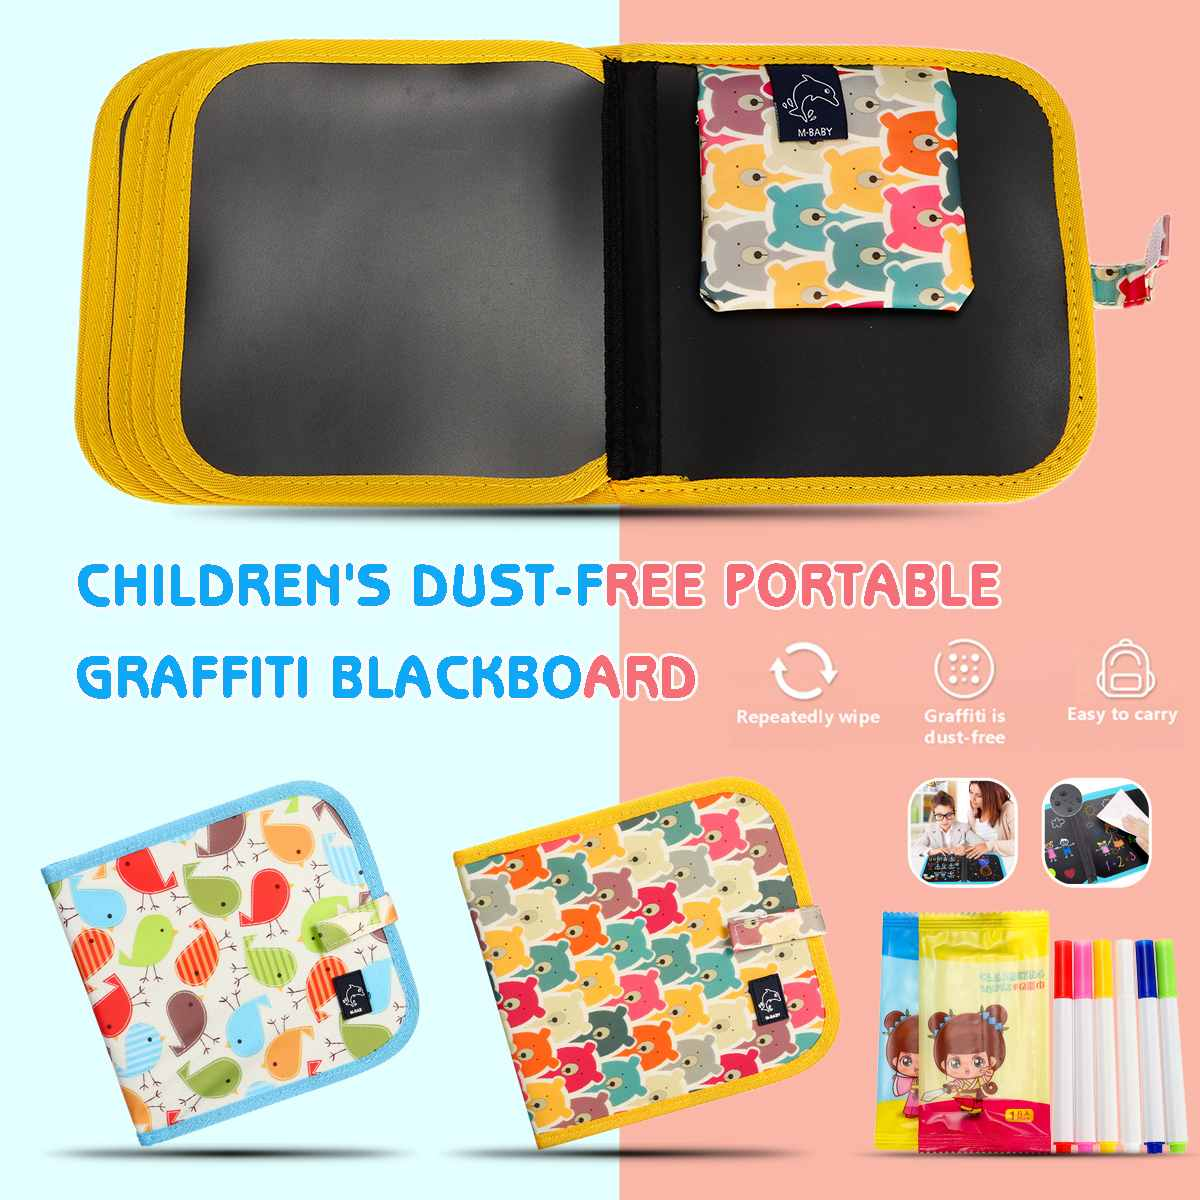 KICUTE Portable Children's Sketchpad DIY Drawing Toys Writing Blackboard Painting Book With 6 Watercolor Chalks Dust-free